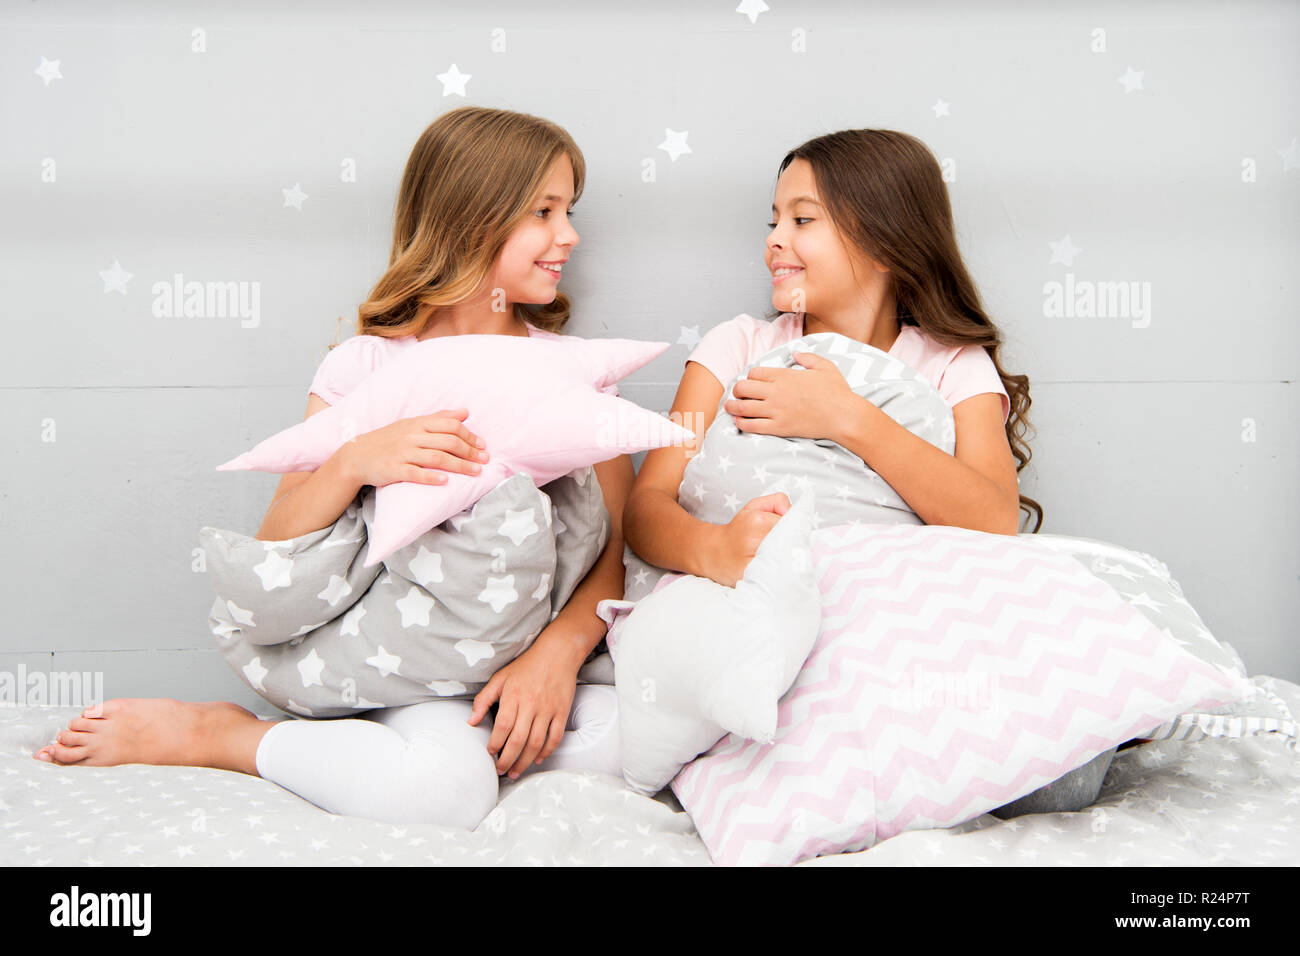 Girls children on bed with cute pillows. Pajamas party concept. Girls just want to have fun. Girlish secrets honest and sincere. Friends kids have nice time pleasant leisure. Best friends forever. - Stock Image